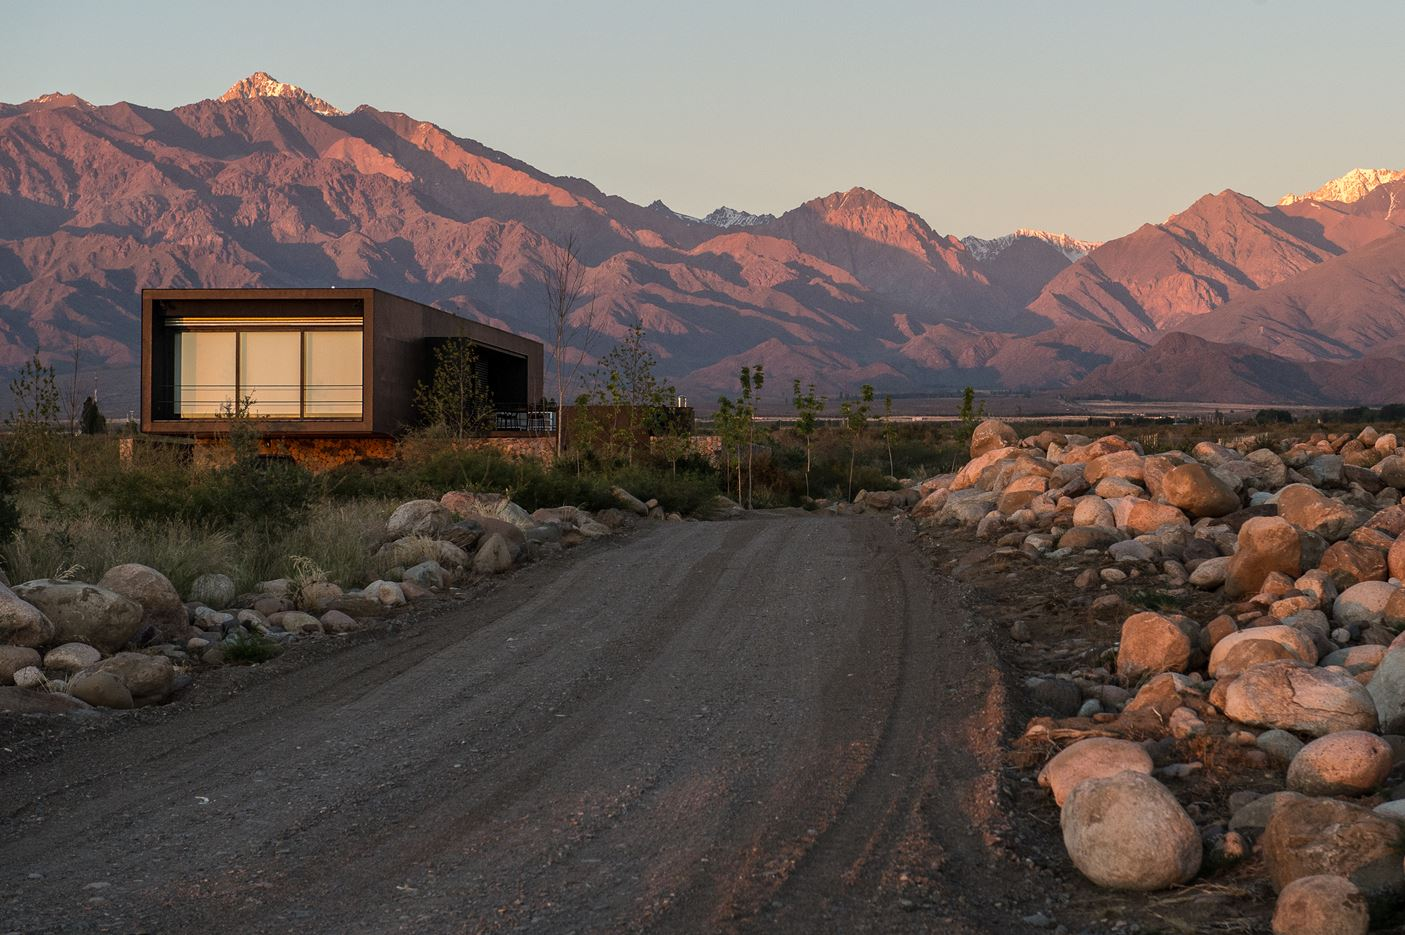 Evans House in Tunuyán, Argentine by A4estudio